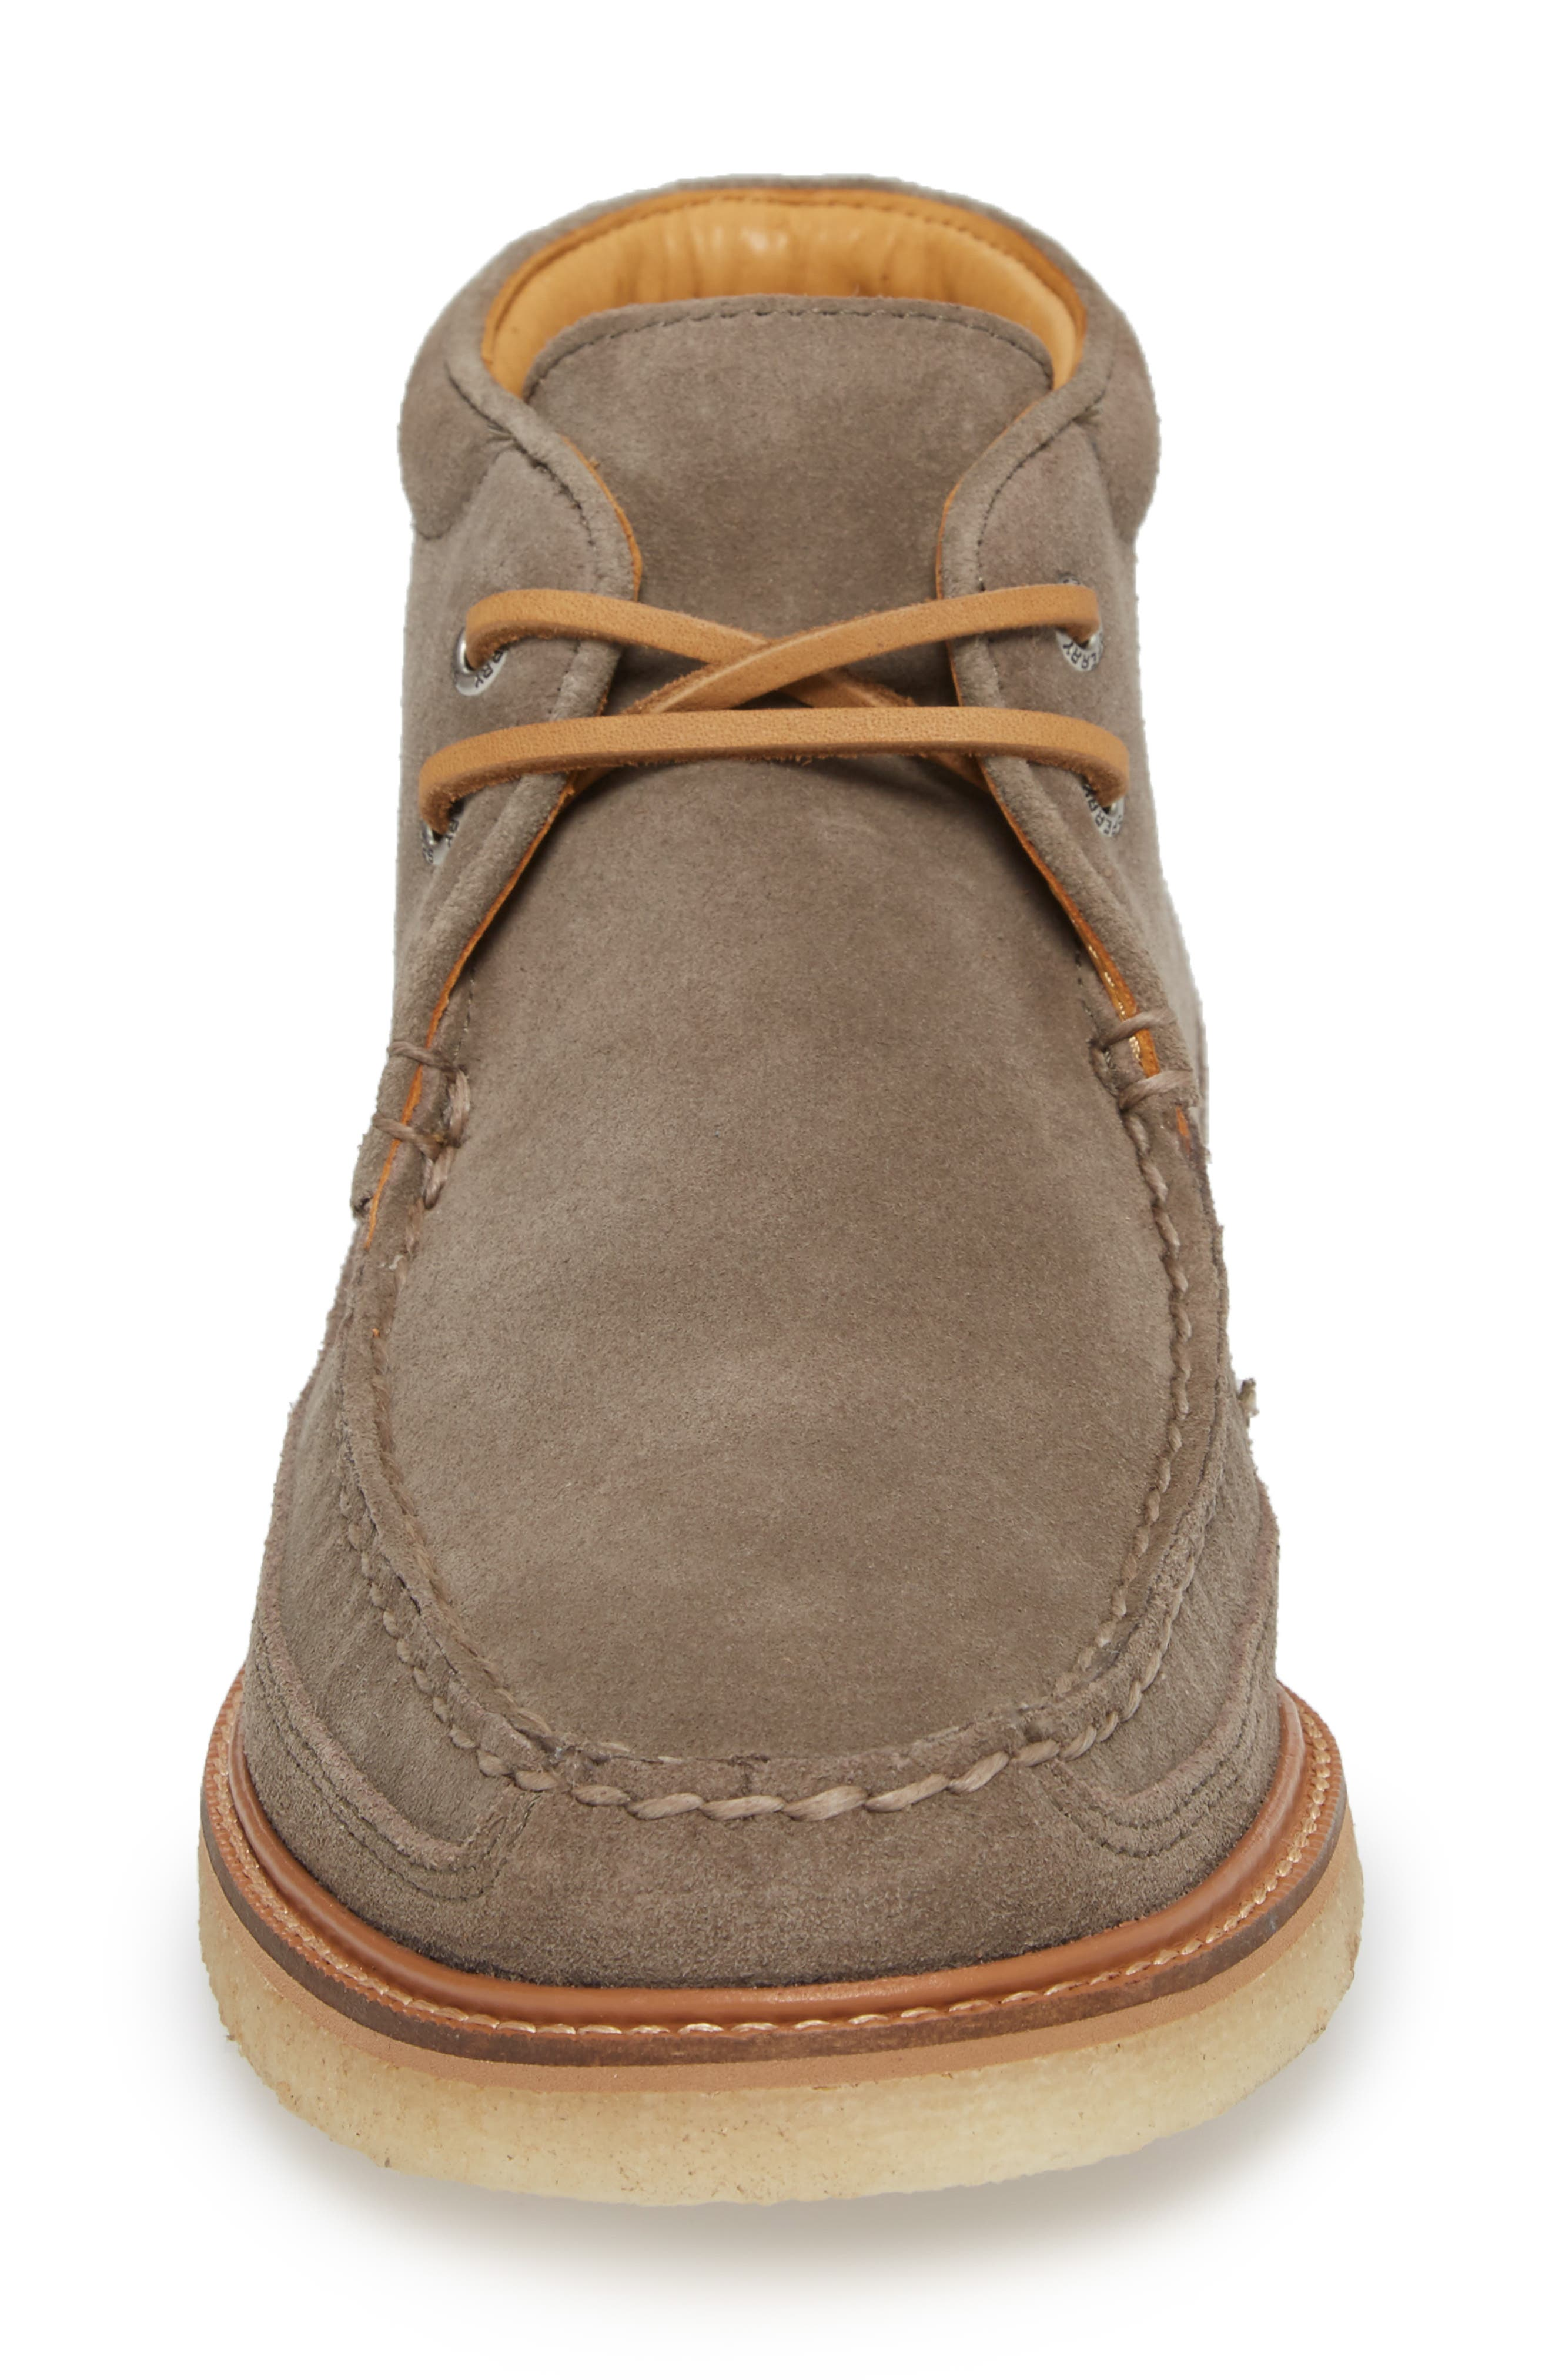 Gold Cup Chukka Boot,                             Alternate thumbnail 4, color,                             Taupe Grey Leather/ Suede